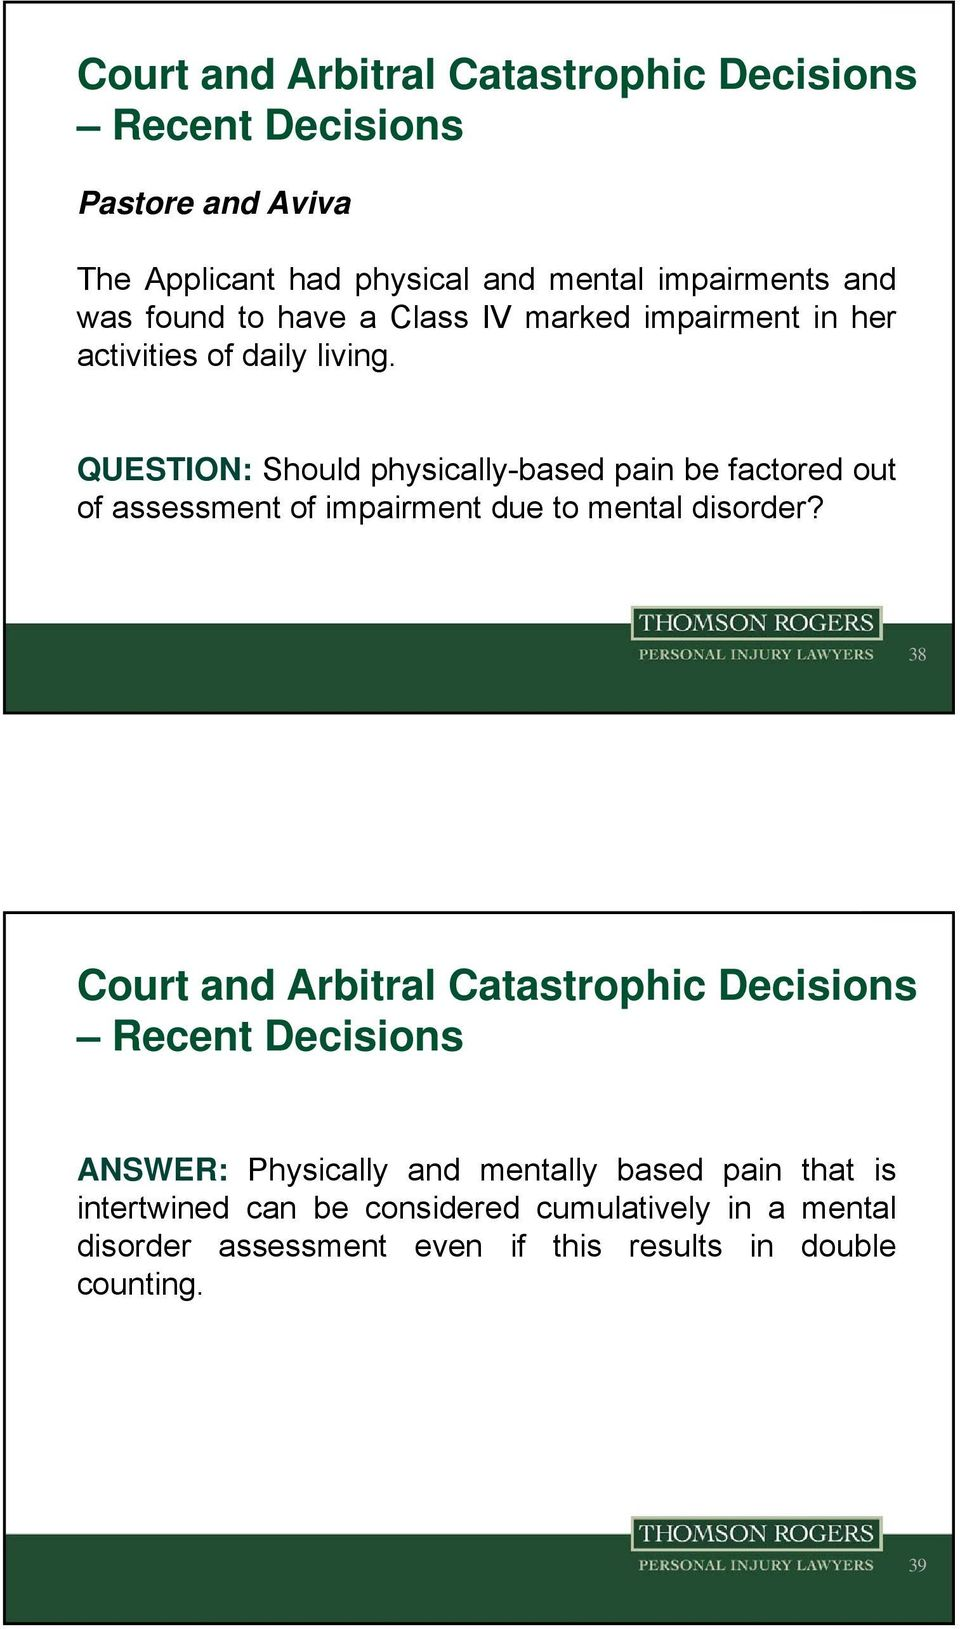 QUESTION: Should physically-based pain be factored out of assessment of impairment due to mental disorder?